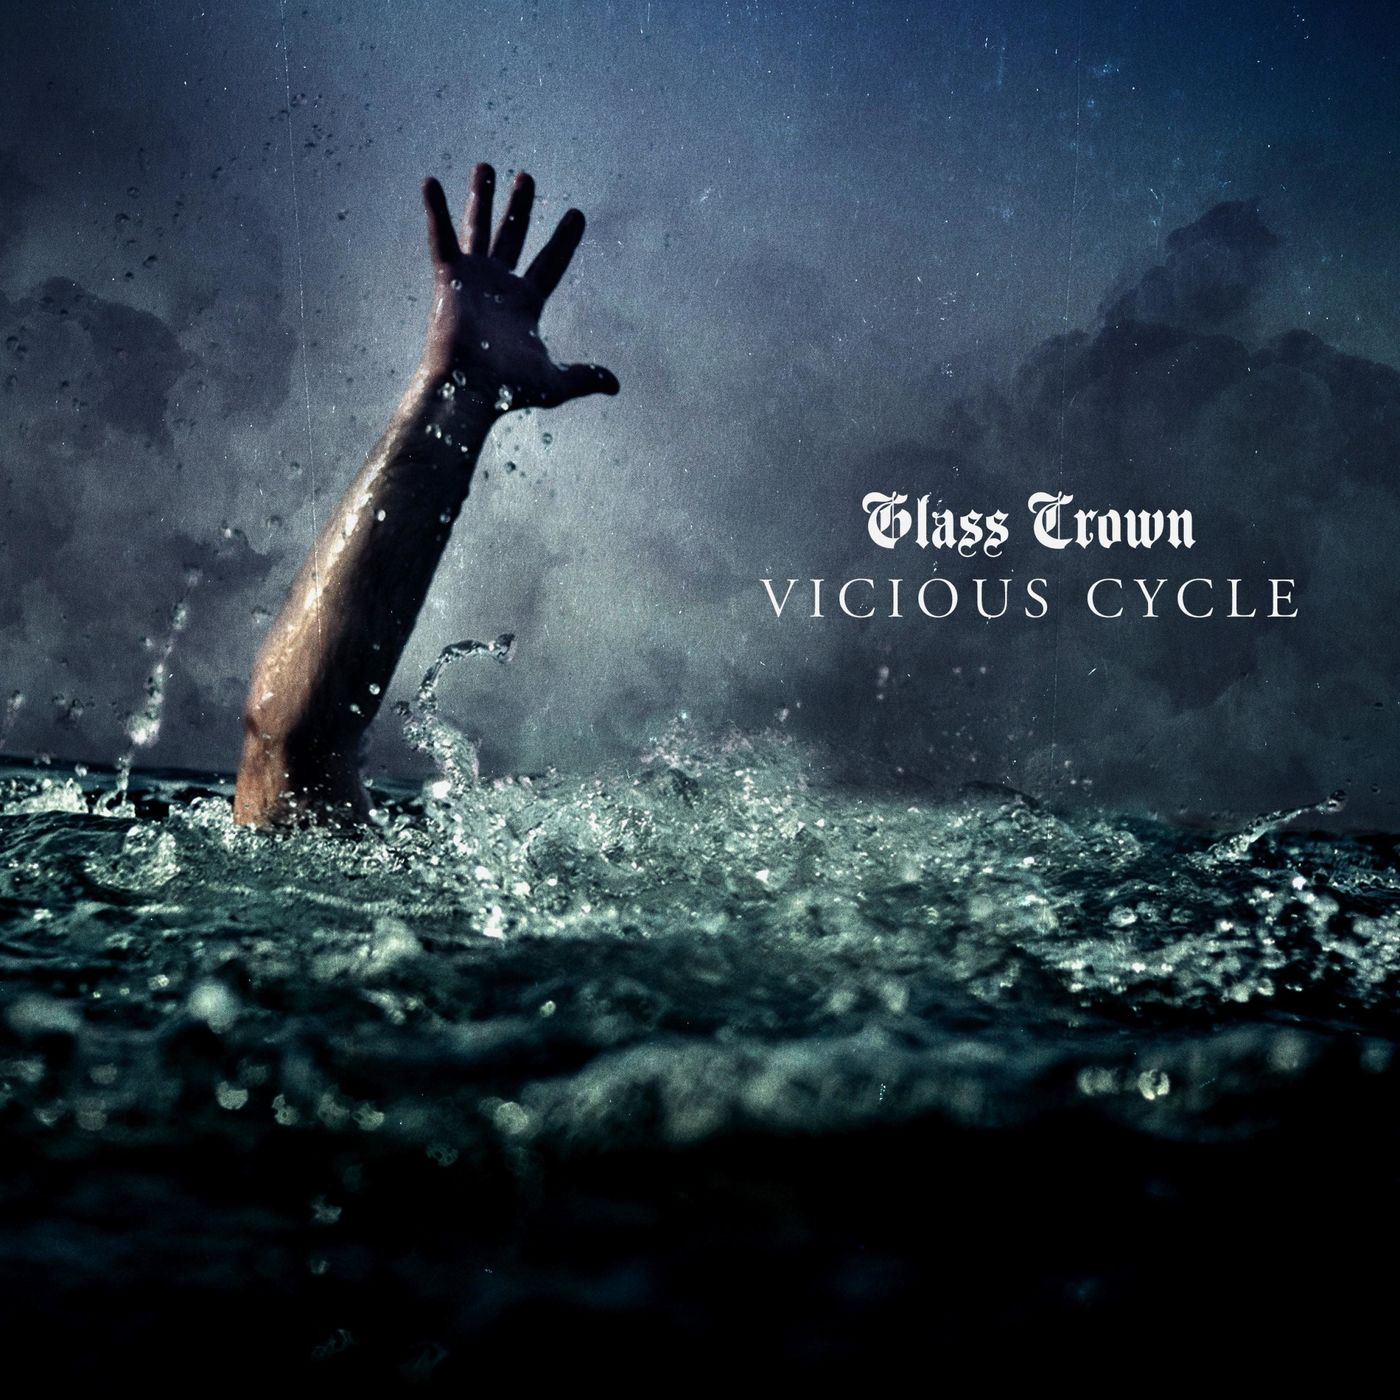 Glass Crown - Vicious Cycle [single] (2020)